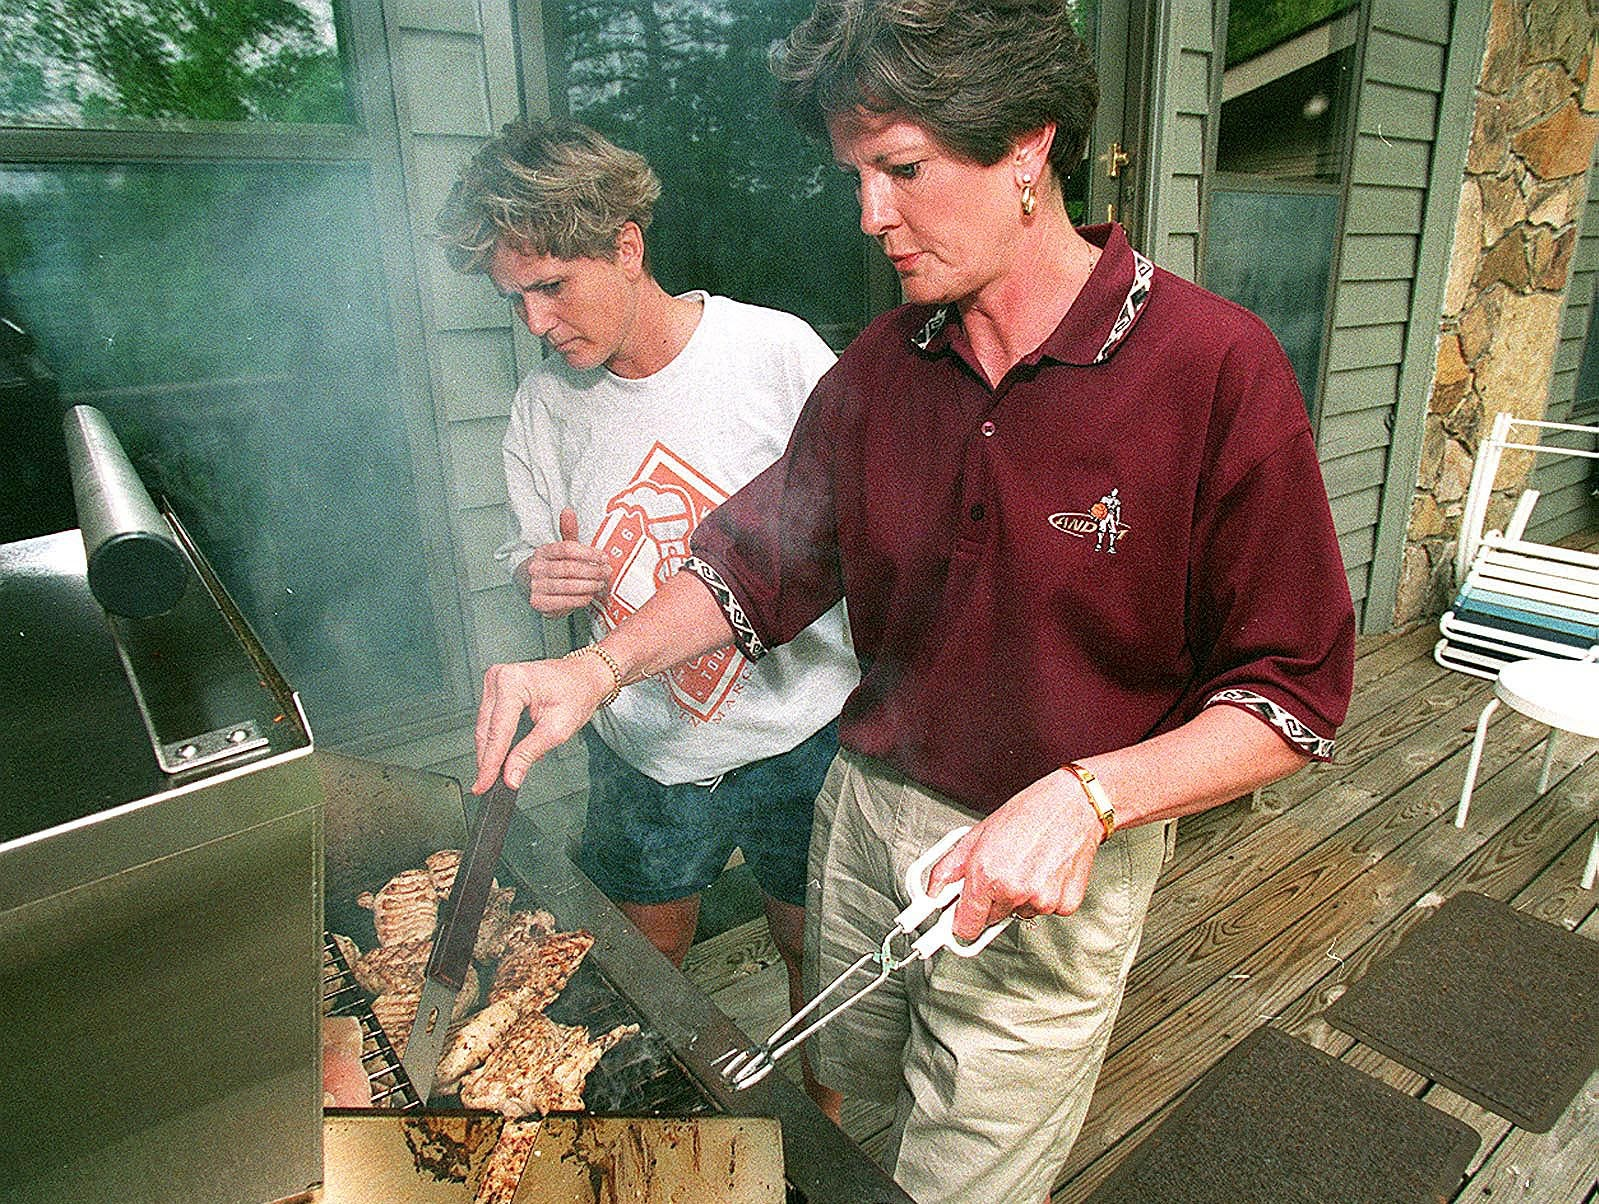 Lady Vols head coach Pat Summitt grills chicken on the back porch of her riverfront home for a team outing. With her is an assistant coach Holly Warlick 1996.